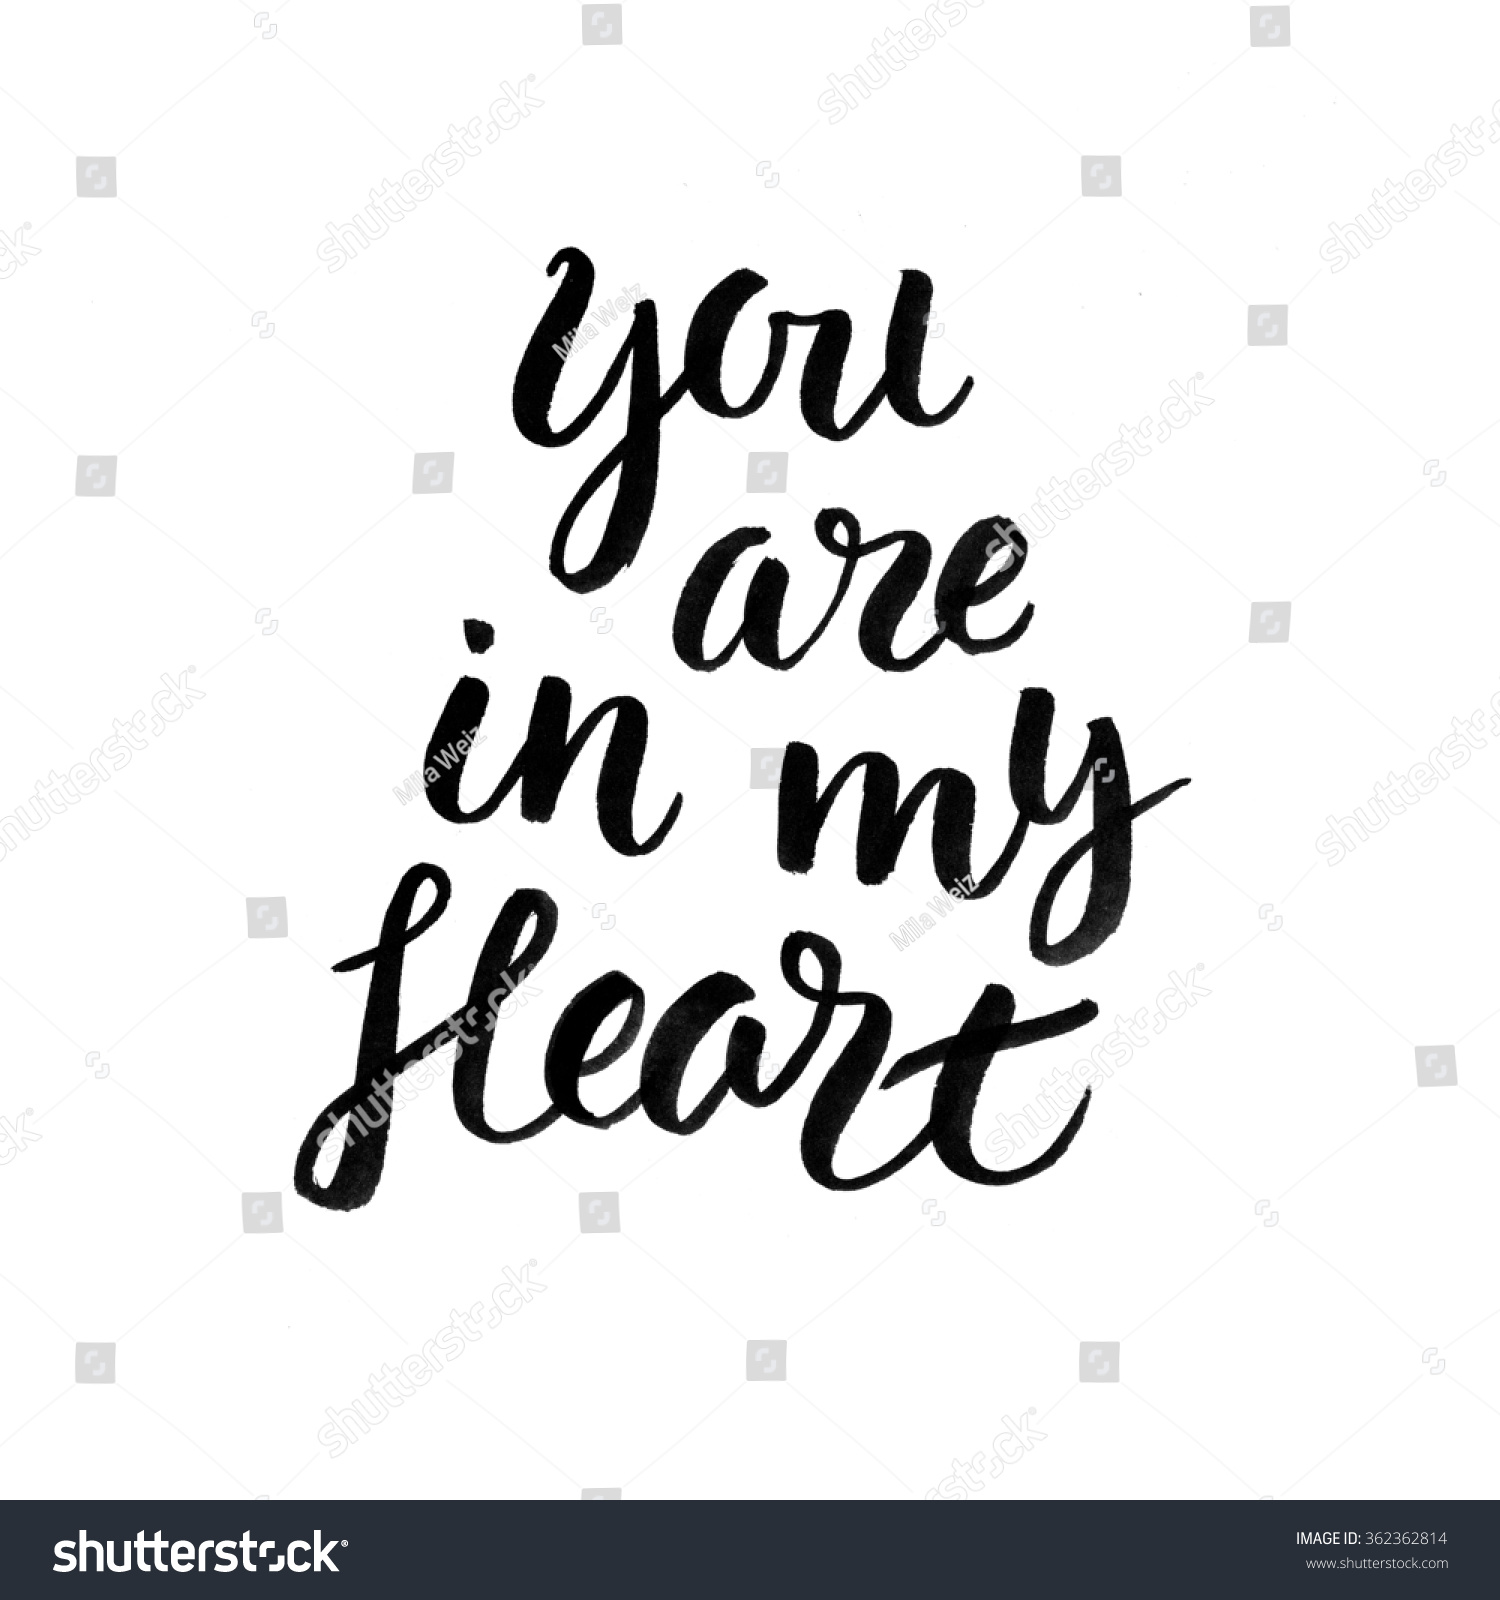 You are in my heart modern calligraphy hand drawn ink illustration shutterstock